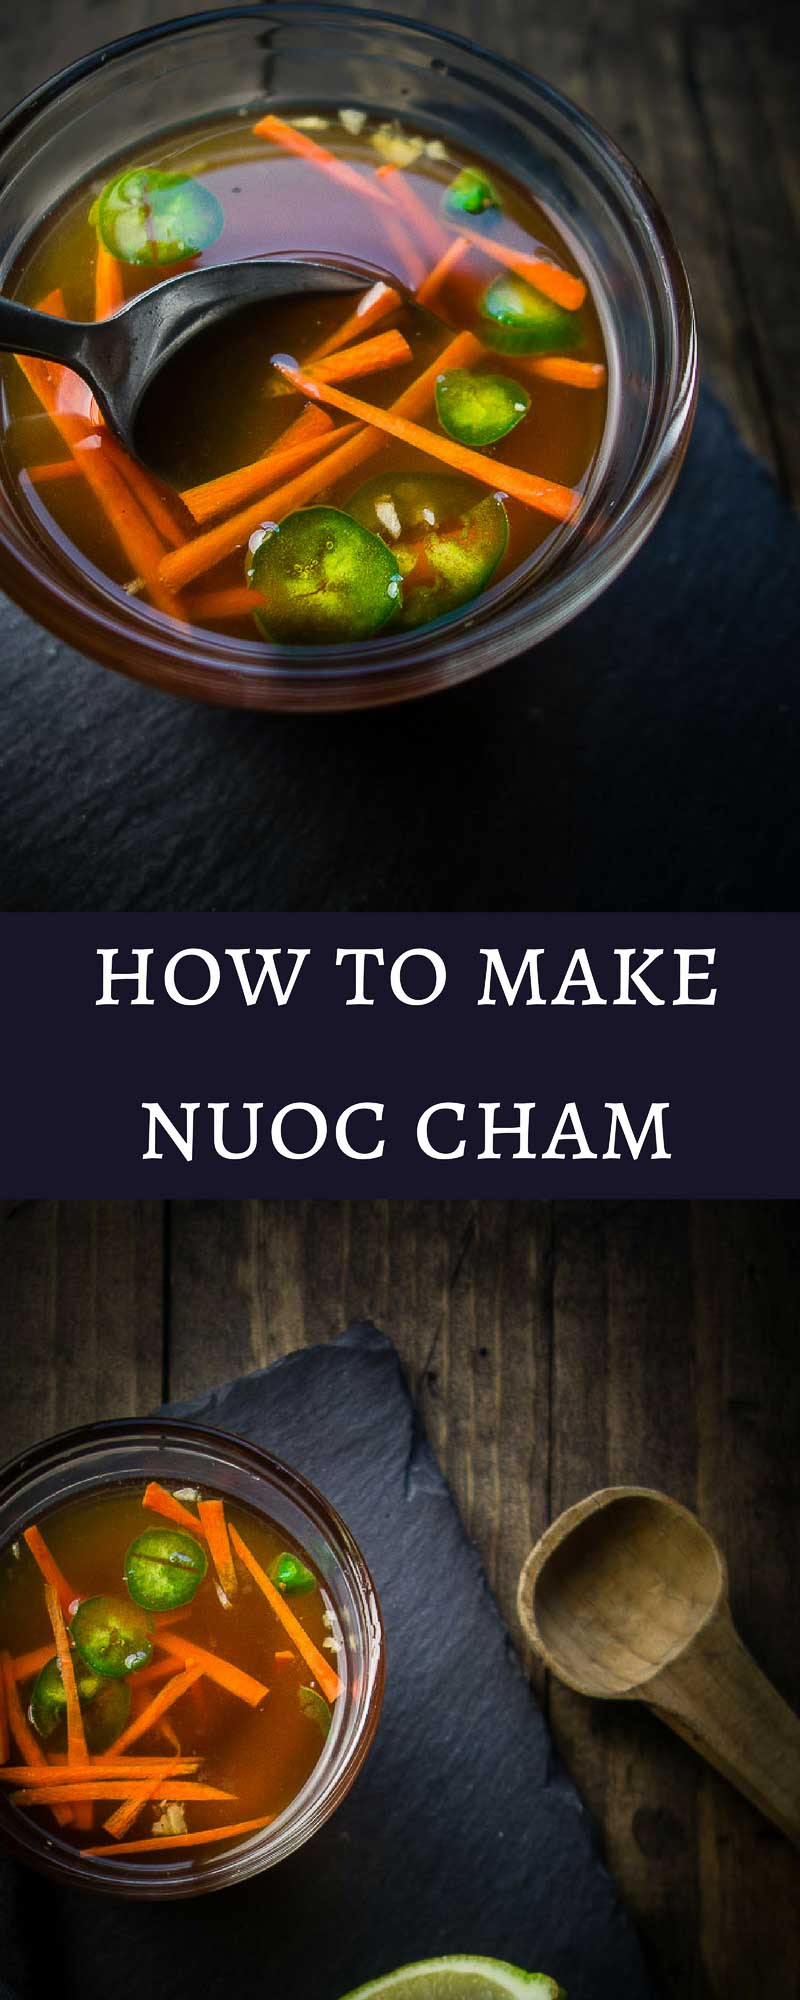 Nuoc Cham is a dipping sauce commonly served with Vietnamese dishes. Made with fish sauce, garlic, chilies, sugar and lime juice, it has umami packed flavor.basic vietnamese dipping sauce | dipping fish sauce | vietnamese fish sauce | spicy fish sauce | classic vietnamese sauce | everyday vietnamese dipping sauce | spicy vietnamese sauce | how to make nuoc cham | nuoc cham sauce recipe | vietnamese recipesnuoc cham recipe, vietnamese dipping sauce easy, vietnamese dipping sauce recip...